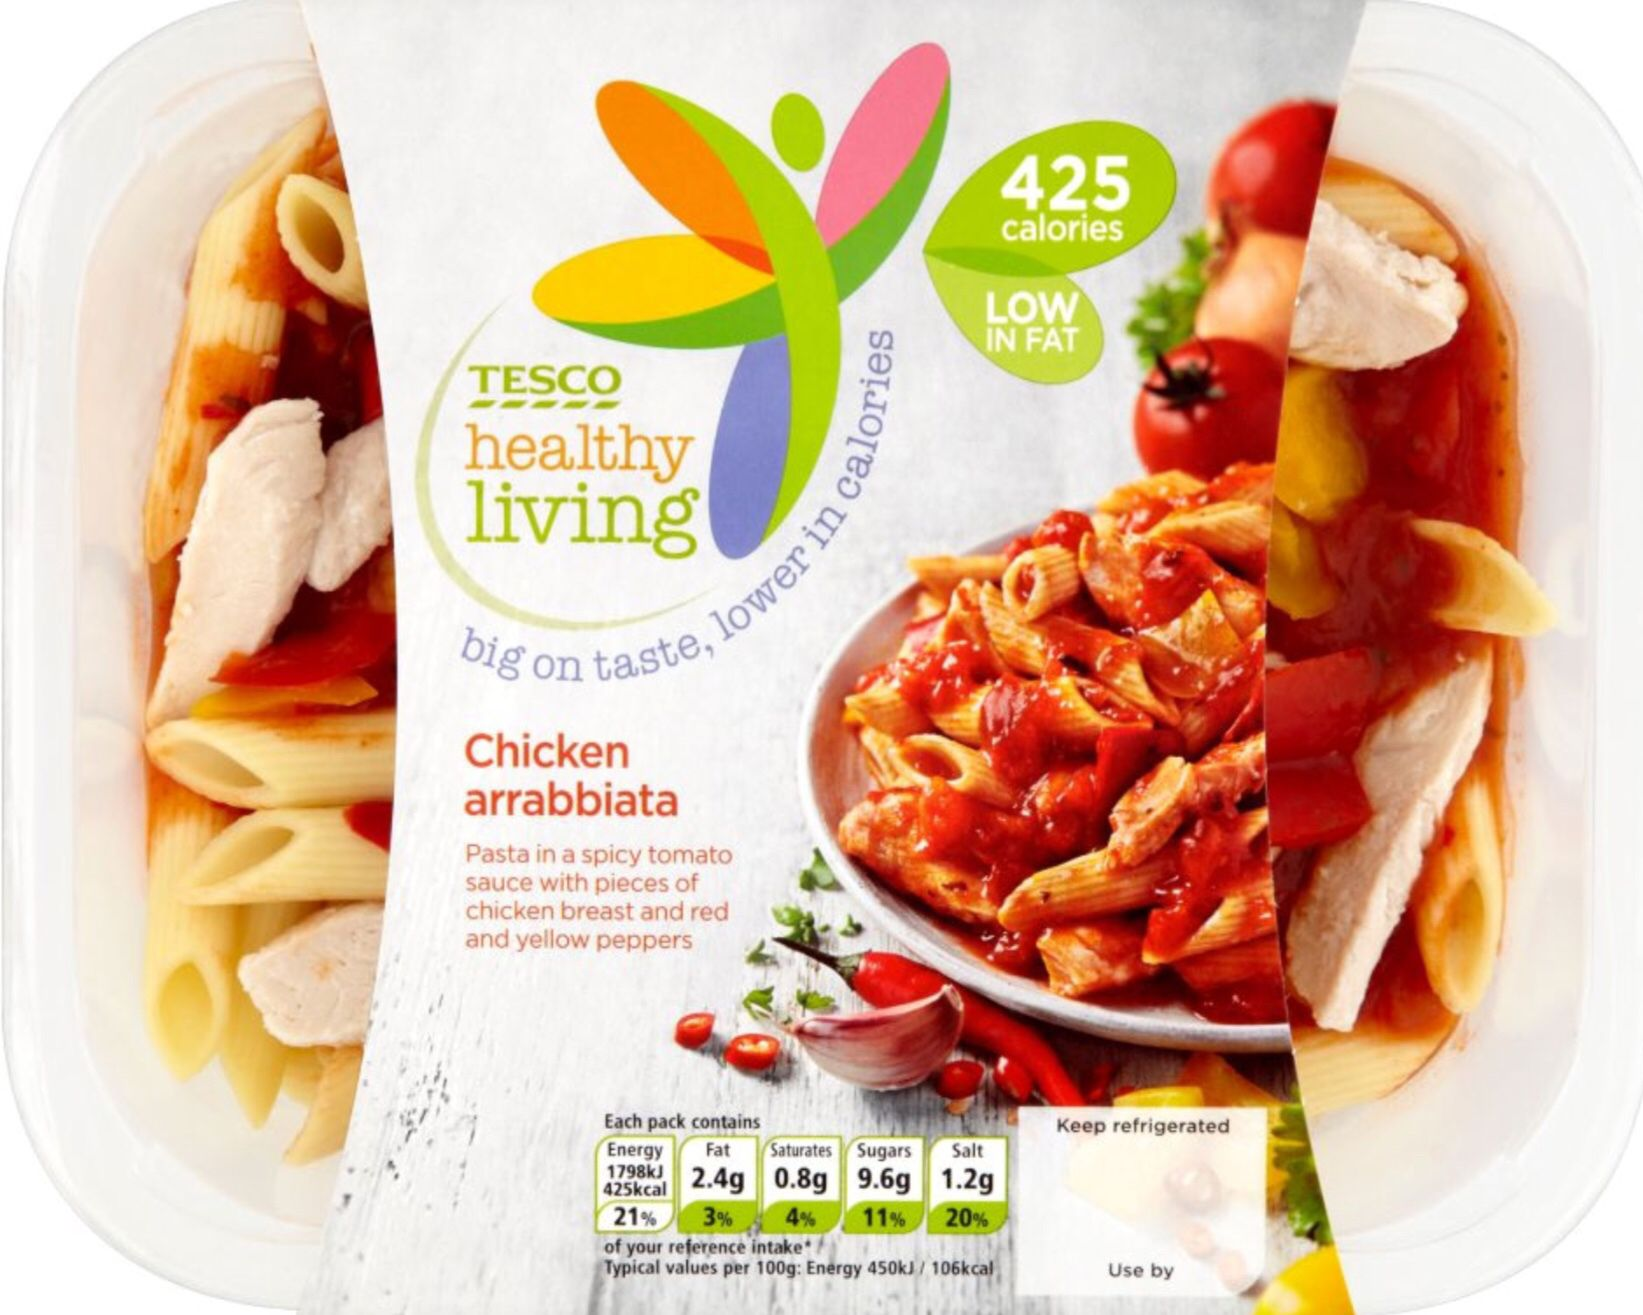 Tesco healthy living chicken arrabbiata chilled 400g pack 4 syns on extra easy tesco Simple slimming world meals